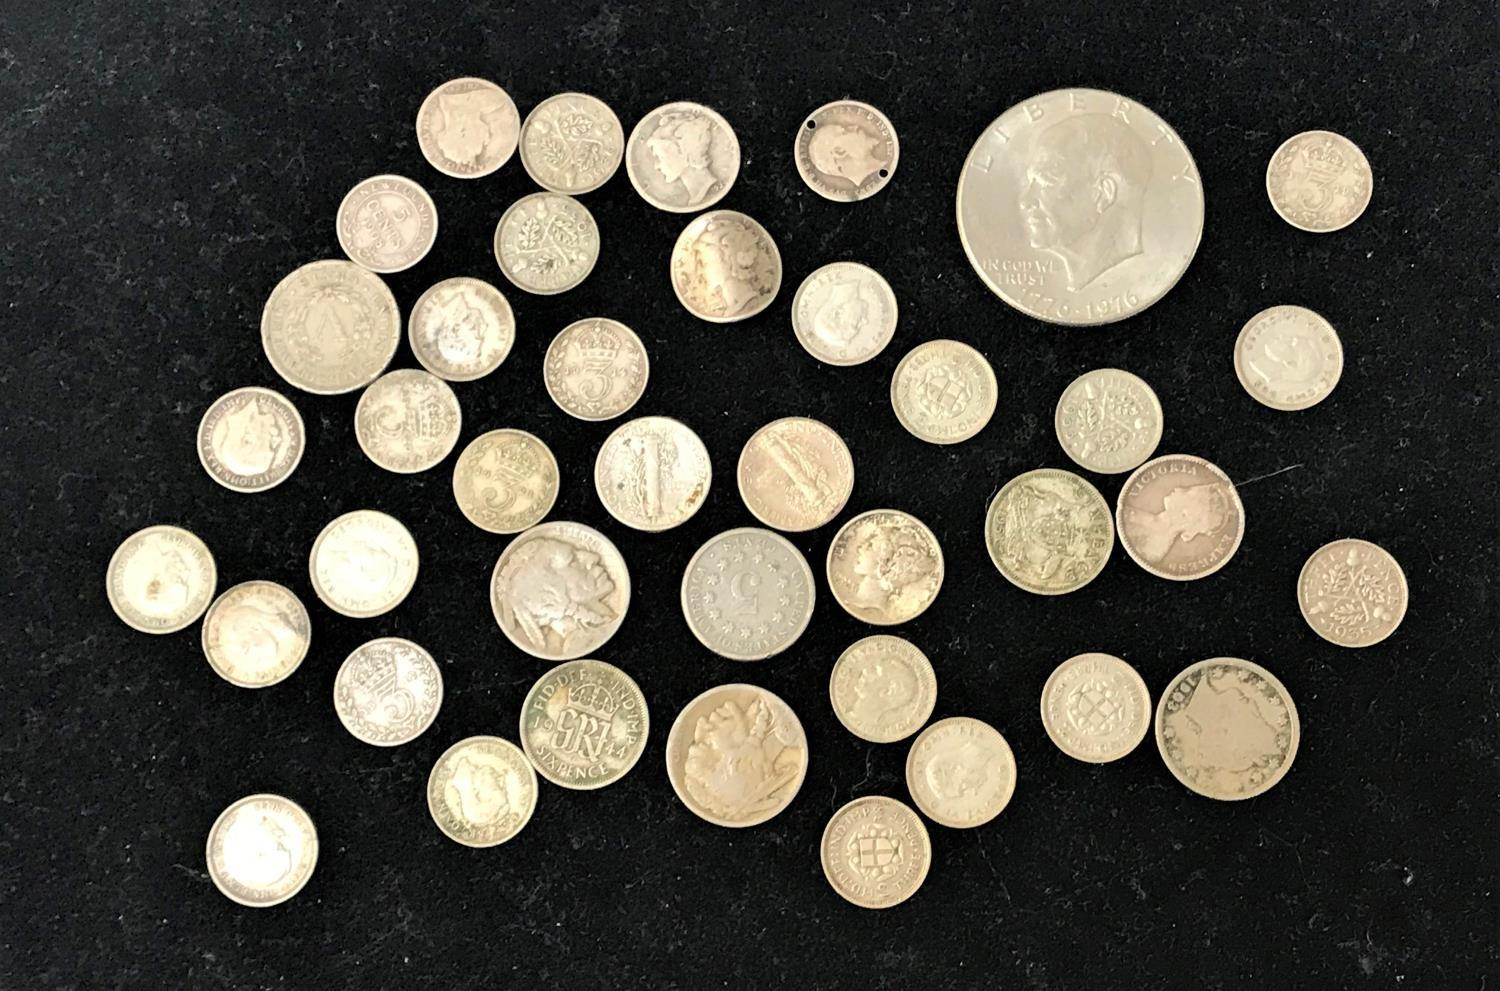 Lot 361 - SELECTION OF BRITISH SILVER AND WORLD COINS including .925 and .500 silver, a Victorian three pence,